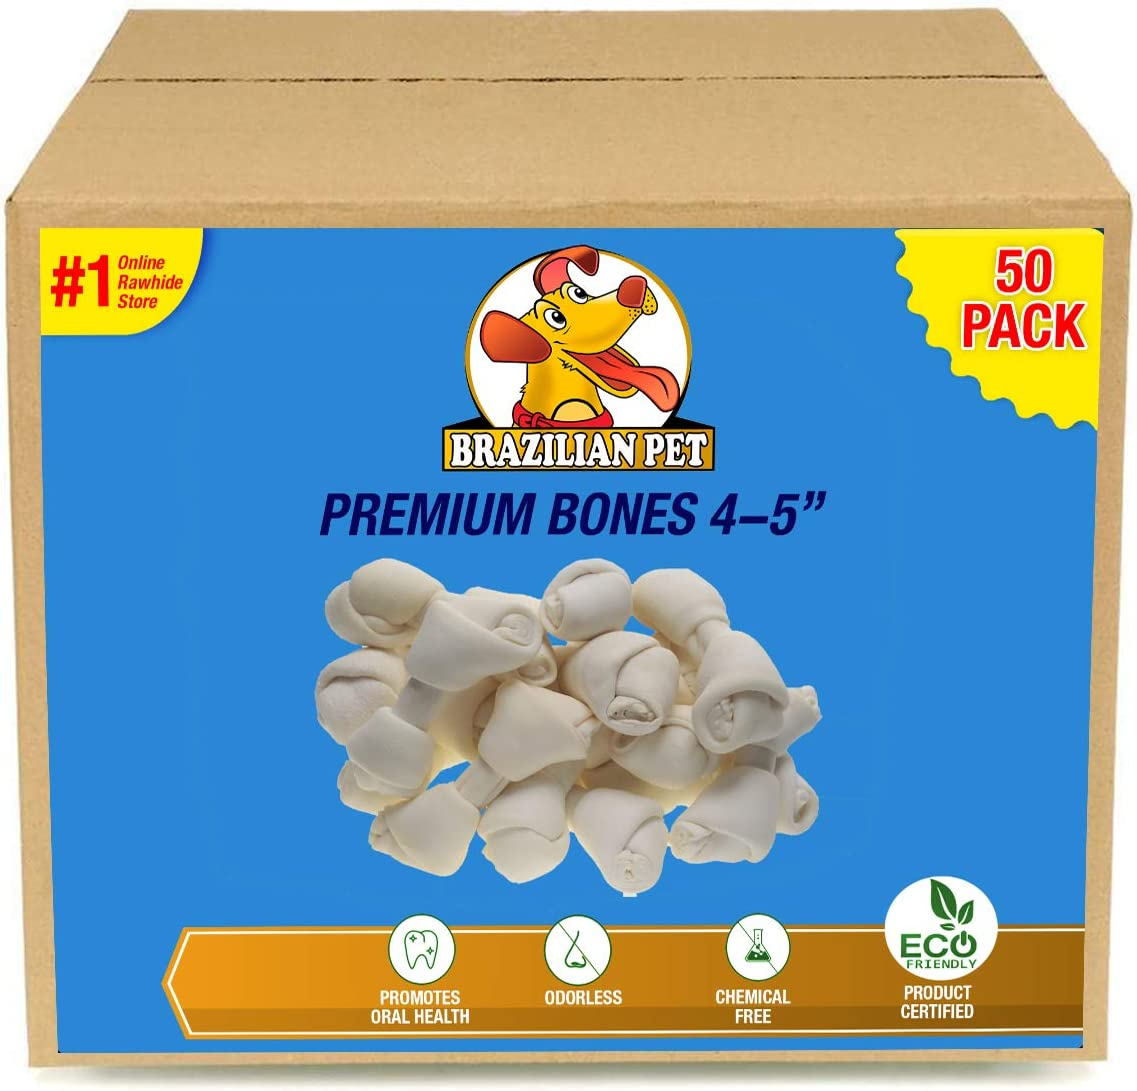 4-5 Inch Premium Dog Bones –Chewing Dog Treat Made with The Best Rawhide 100% Natural, No Additives, Chemicals or Hormones Natural Grass Fed in South America - USDA/FDA Approved 618fn6LjMhL